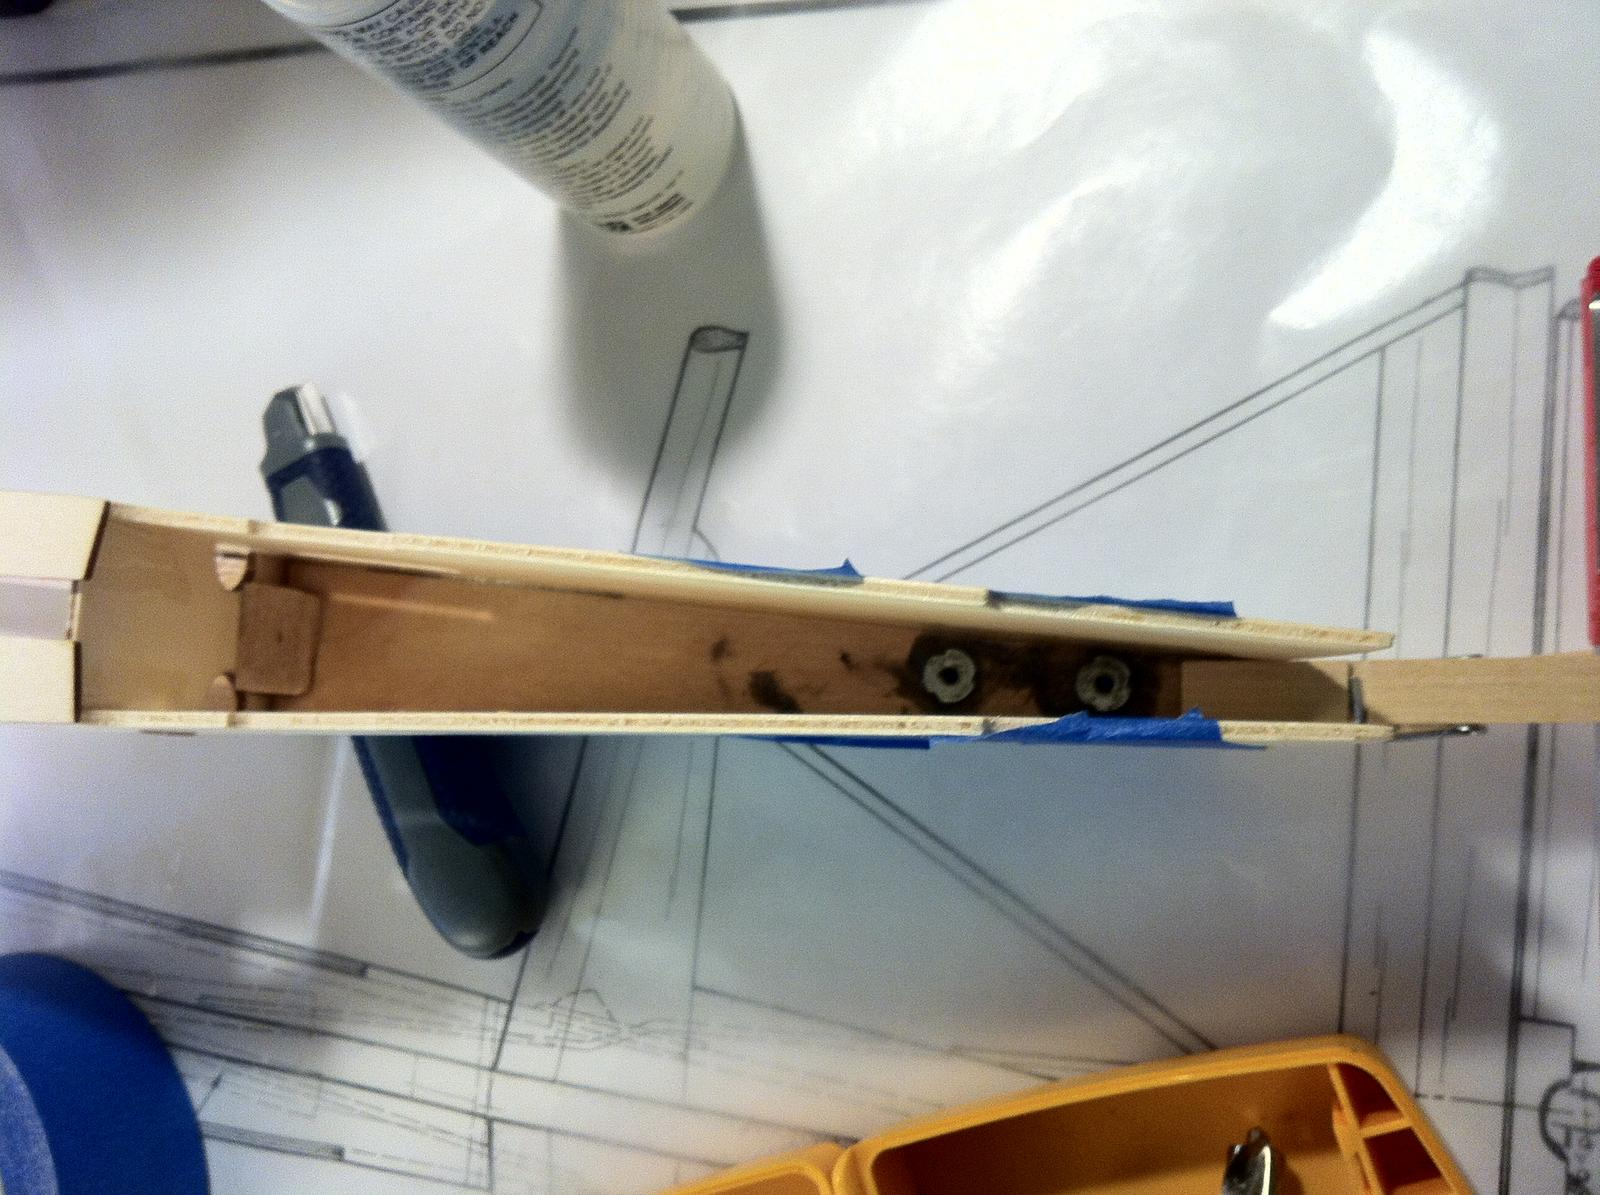 Tail wheel re-enforcement epoxyed into place.